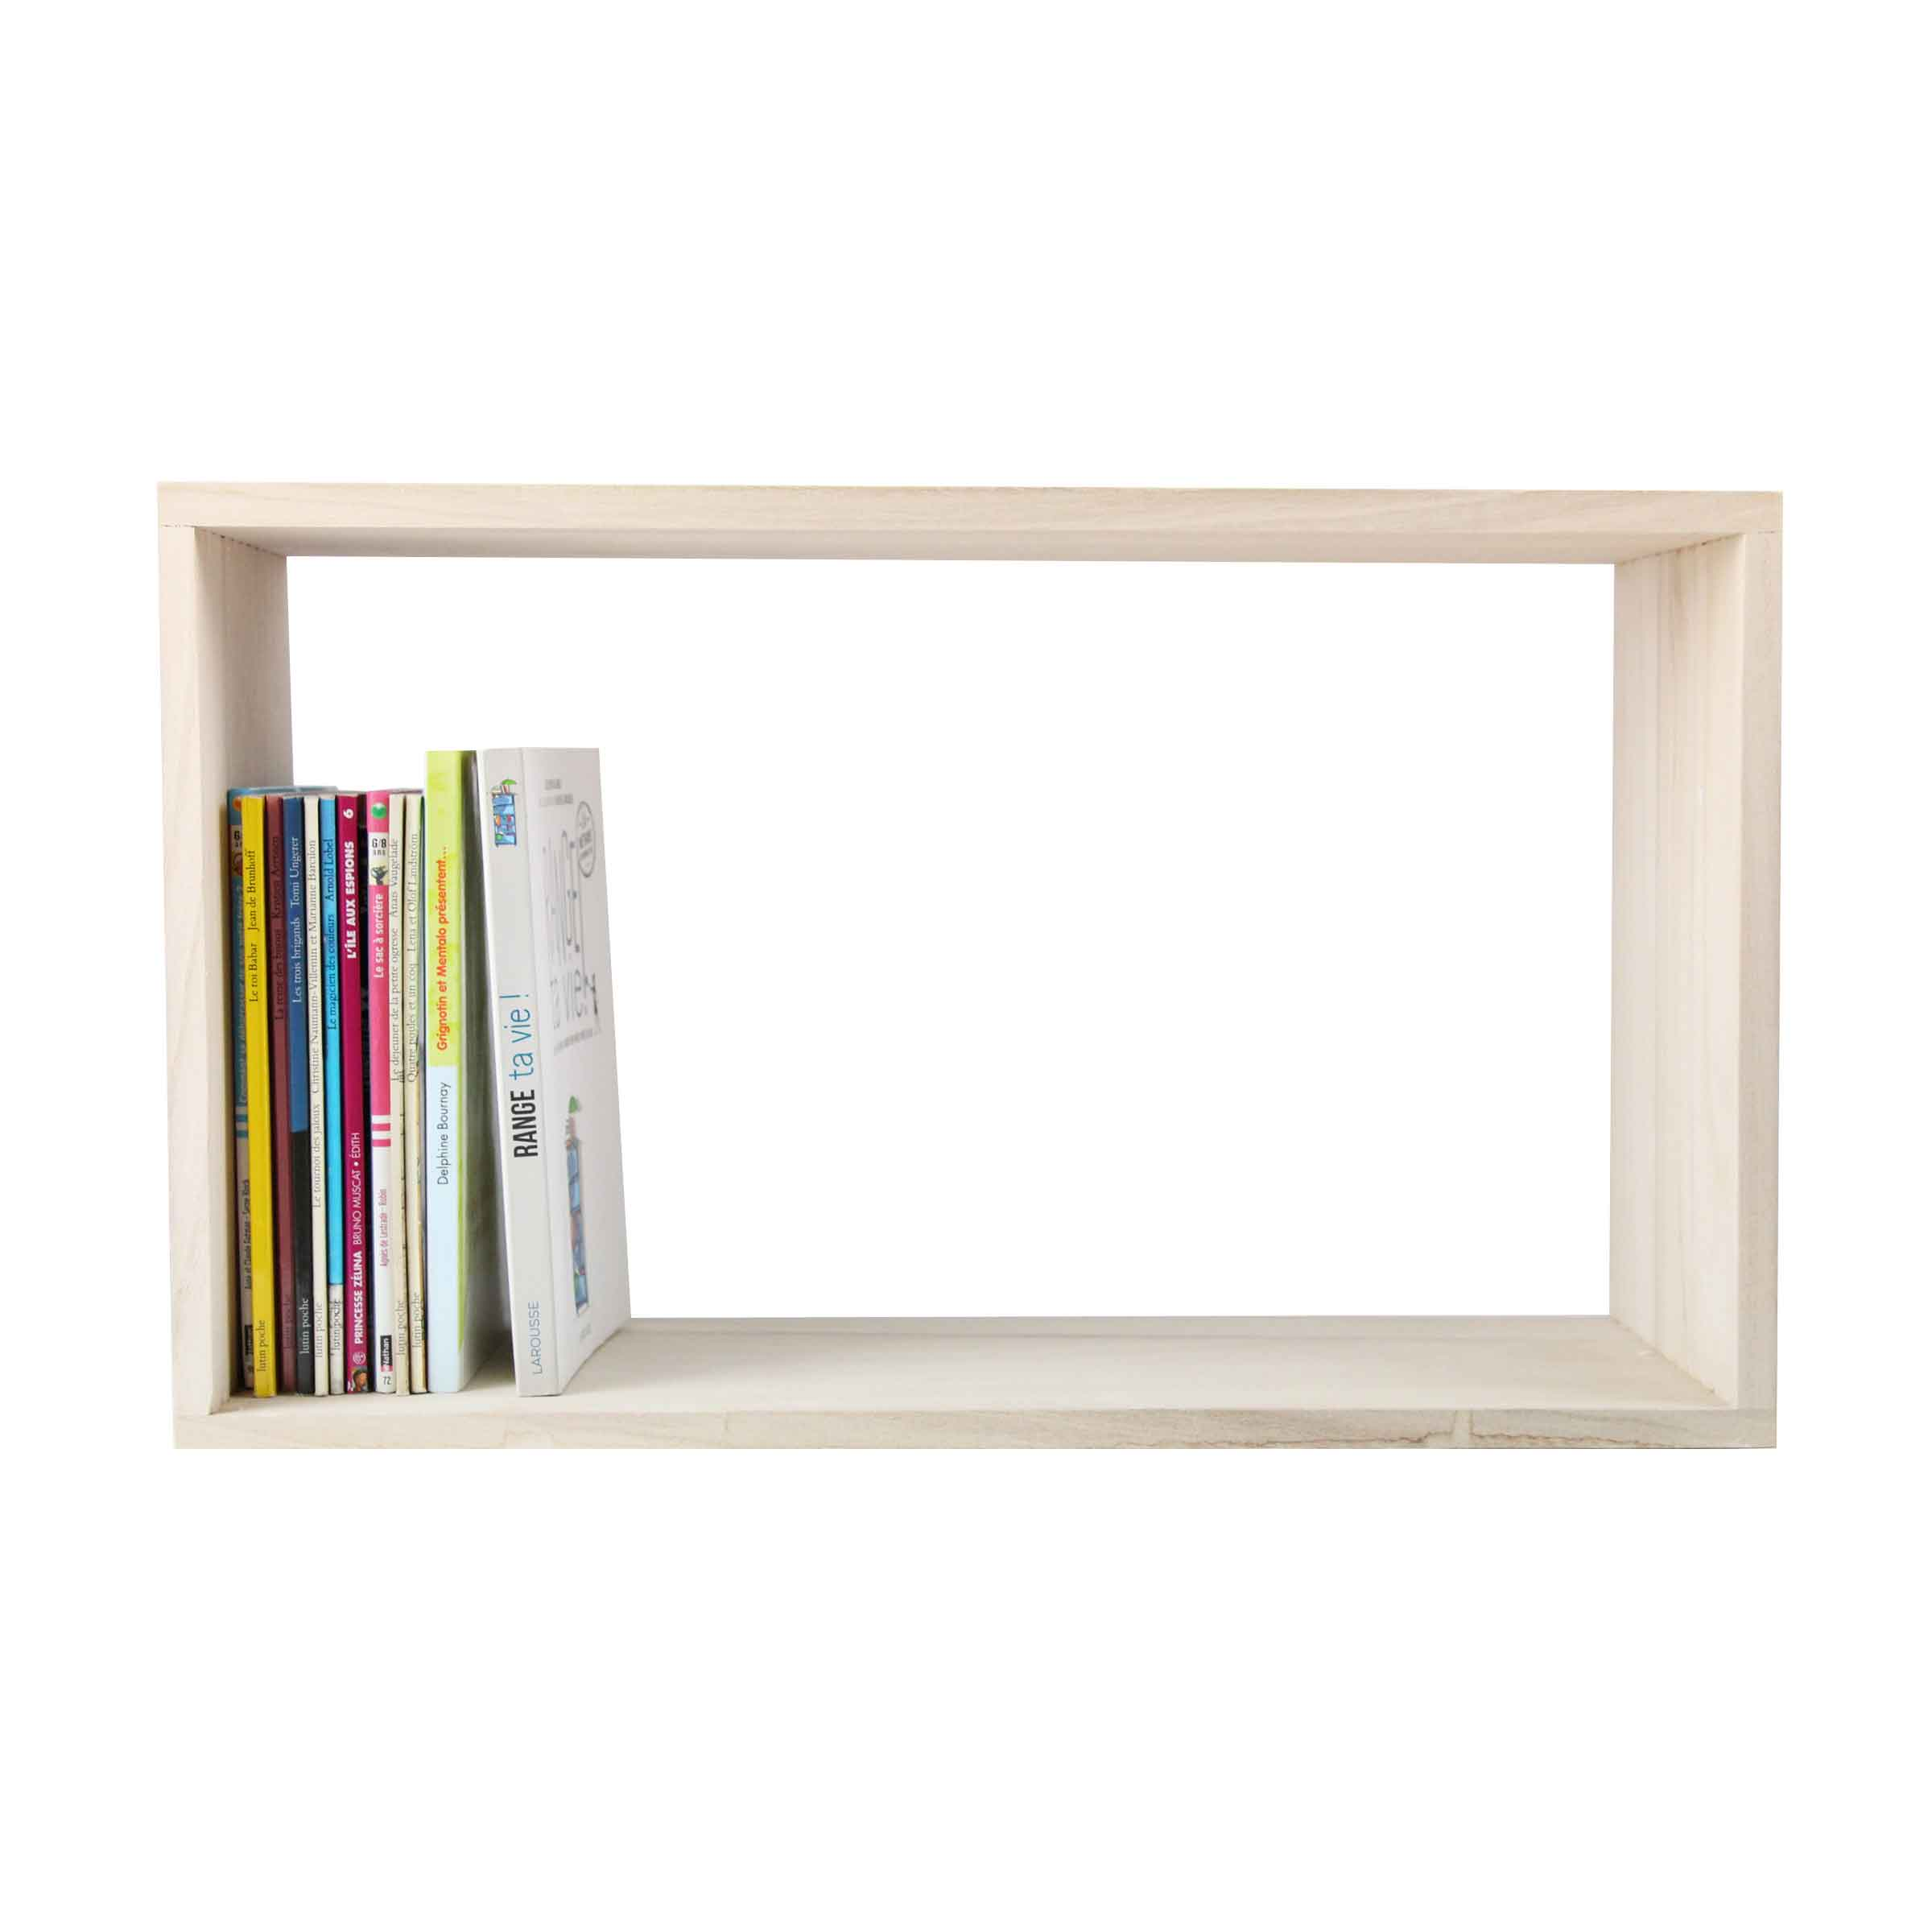 Etag re murale en bois naturel rectangulaire for Etagere murale bois brut